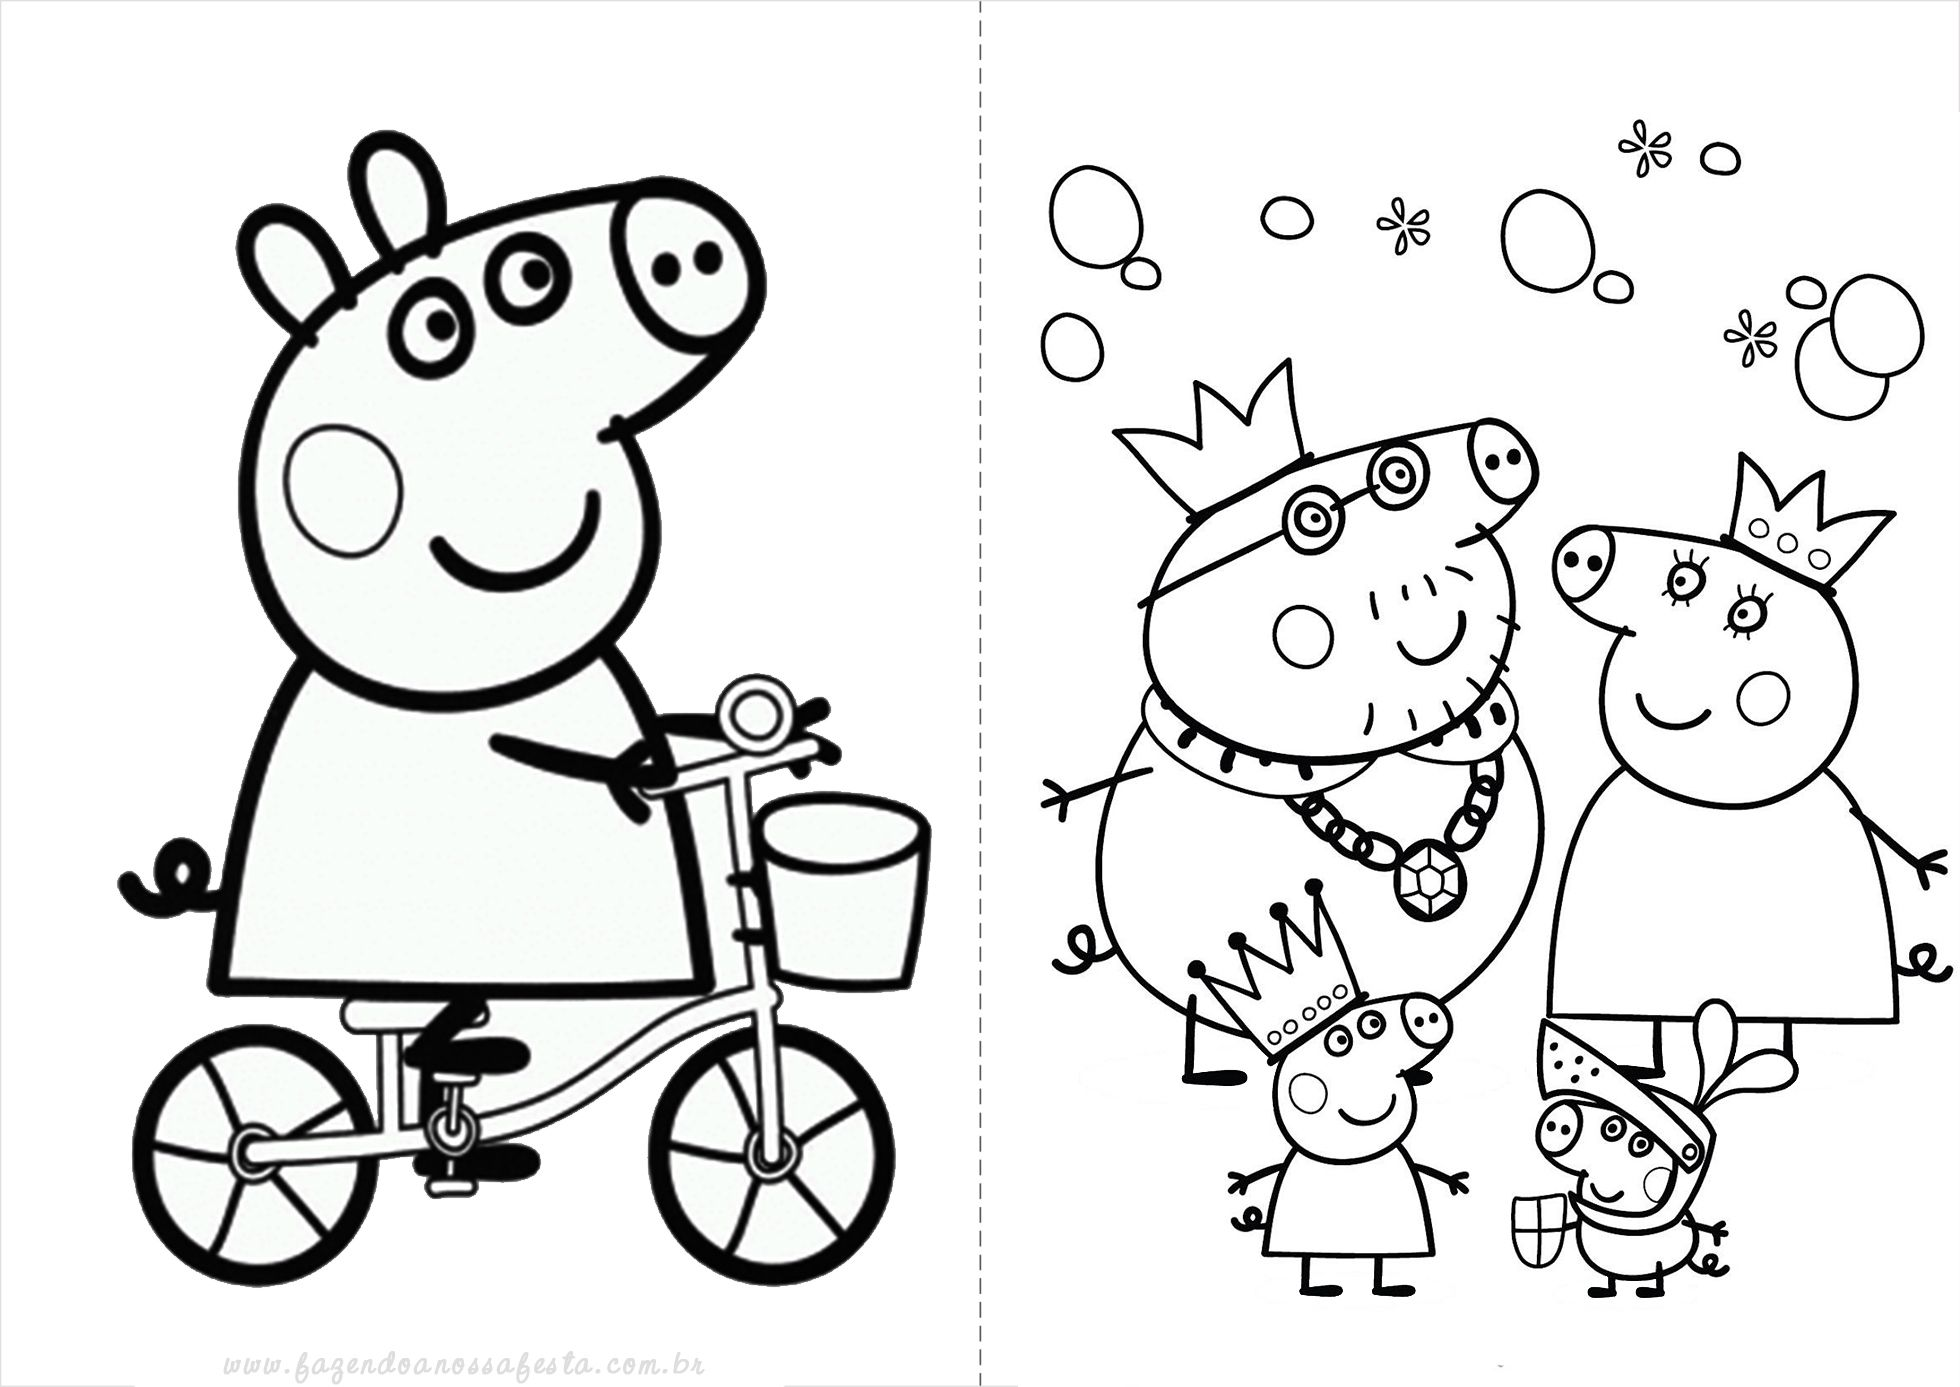 Pe peppa pig coloring pictures to print - Explore Peppa Pig Videos Peppa Pig Games And More